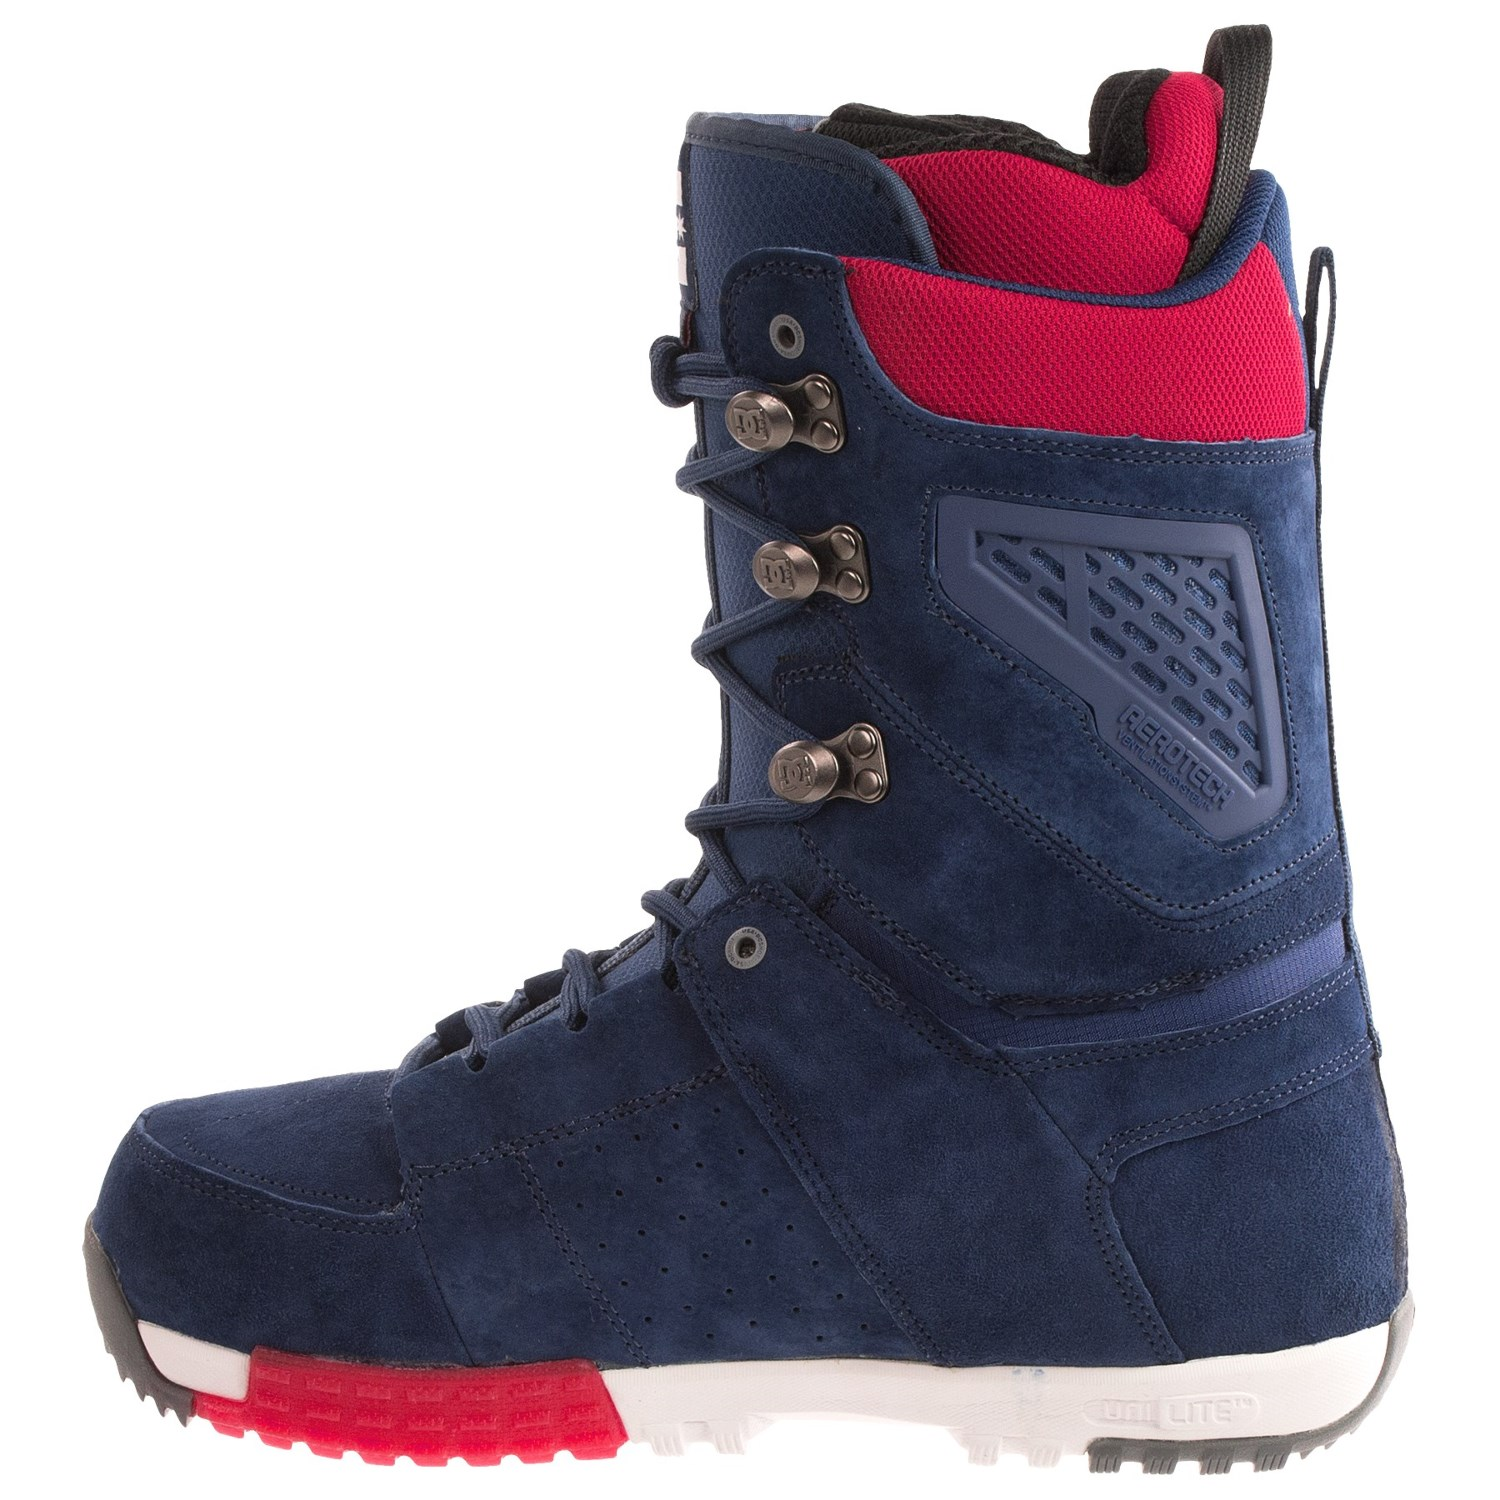 dc shoes lynx snowboard boots for 8968w save 68